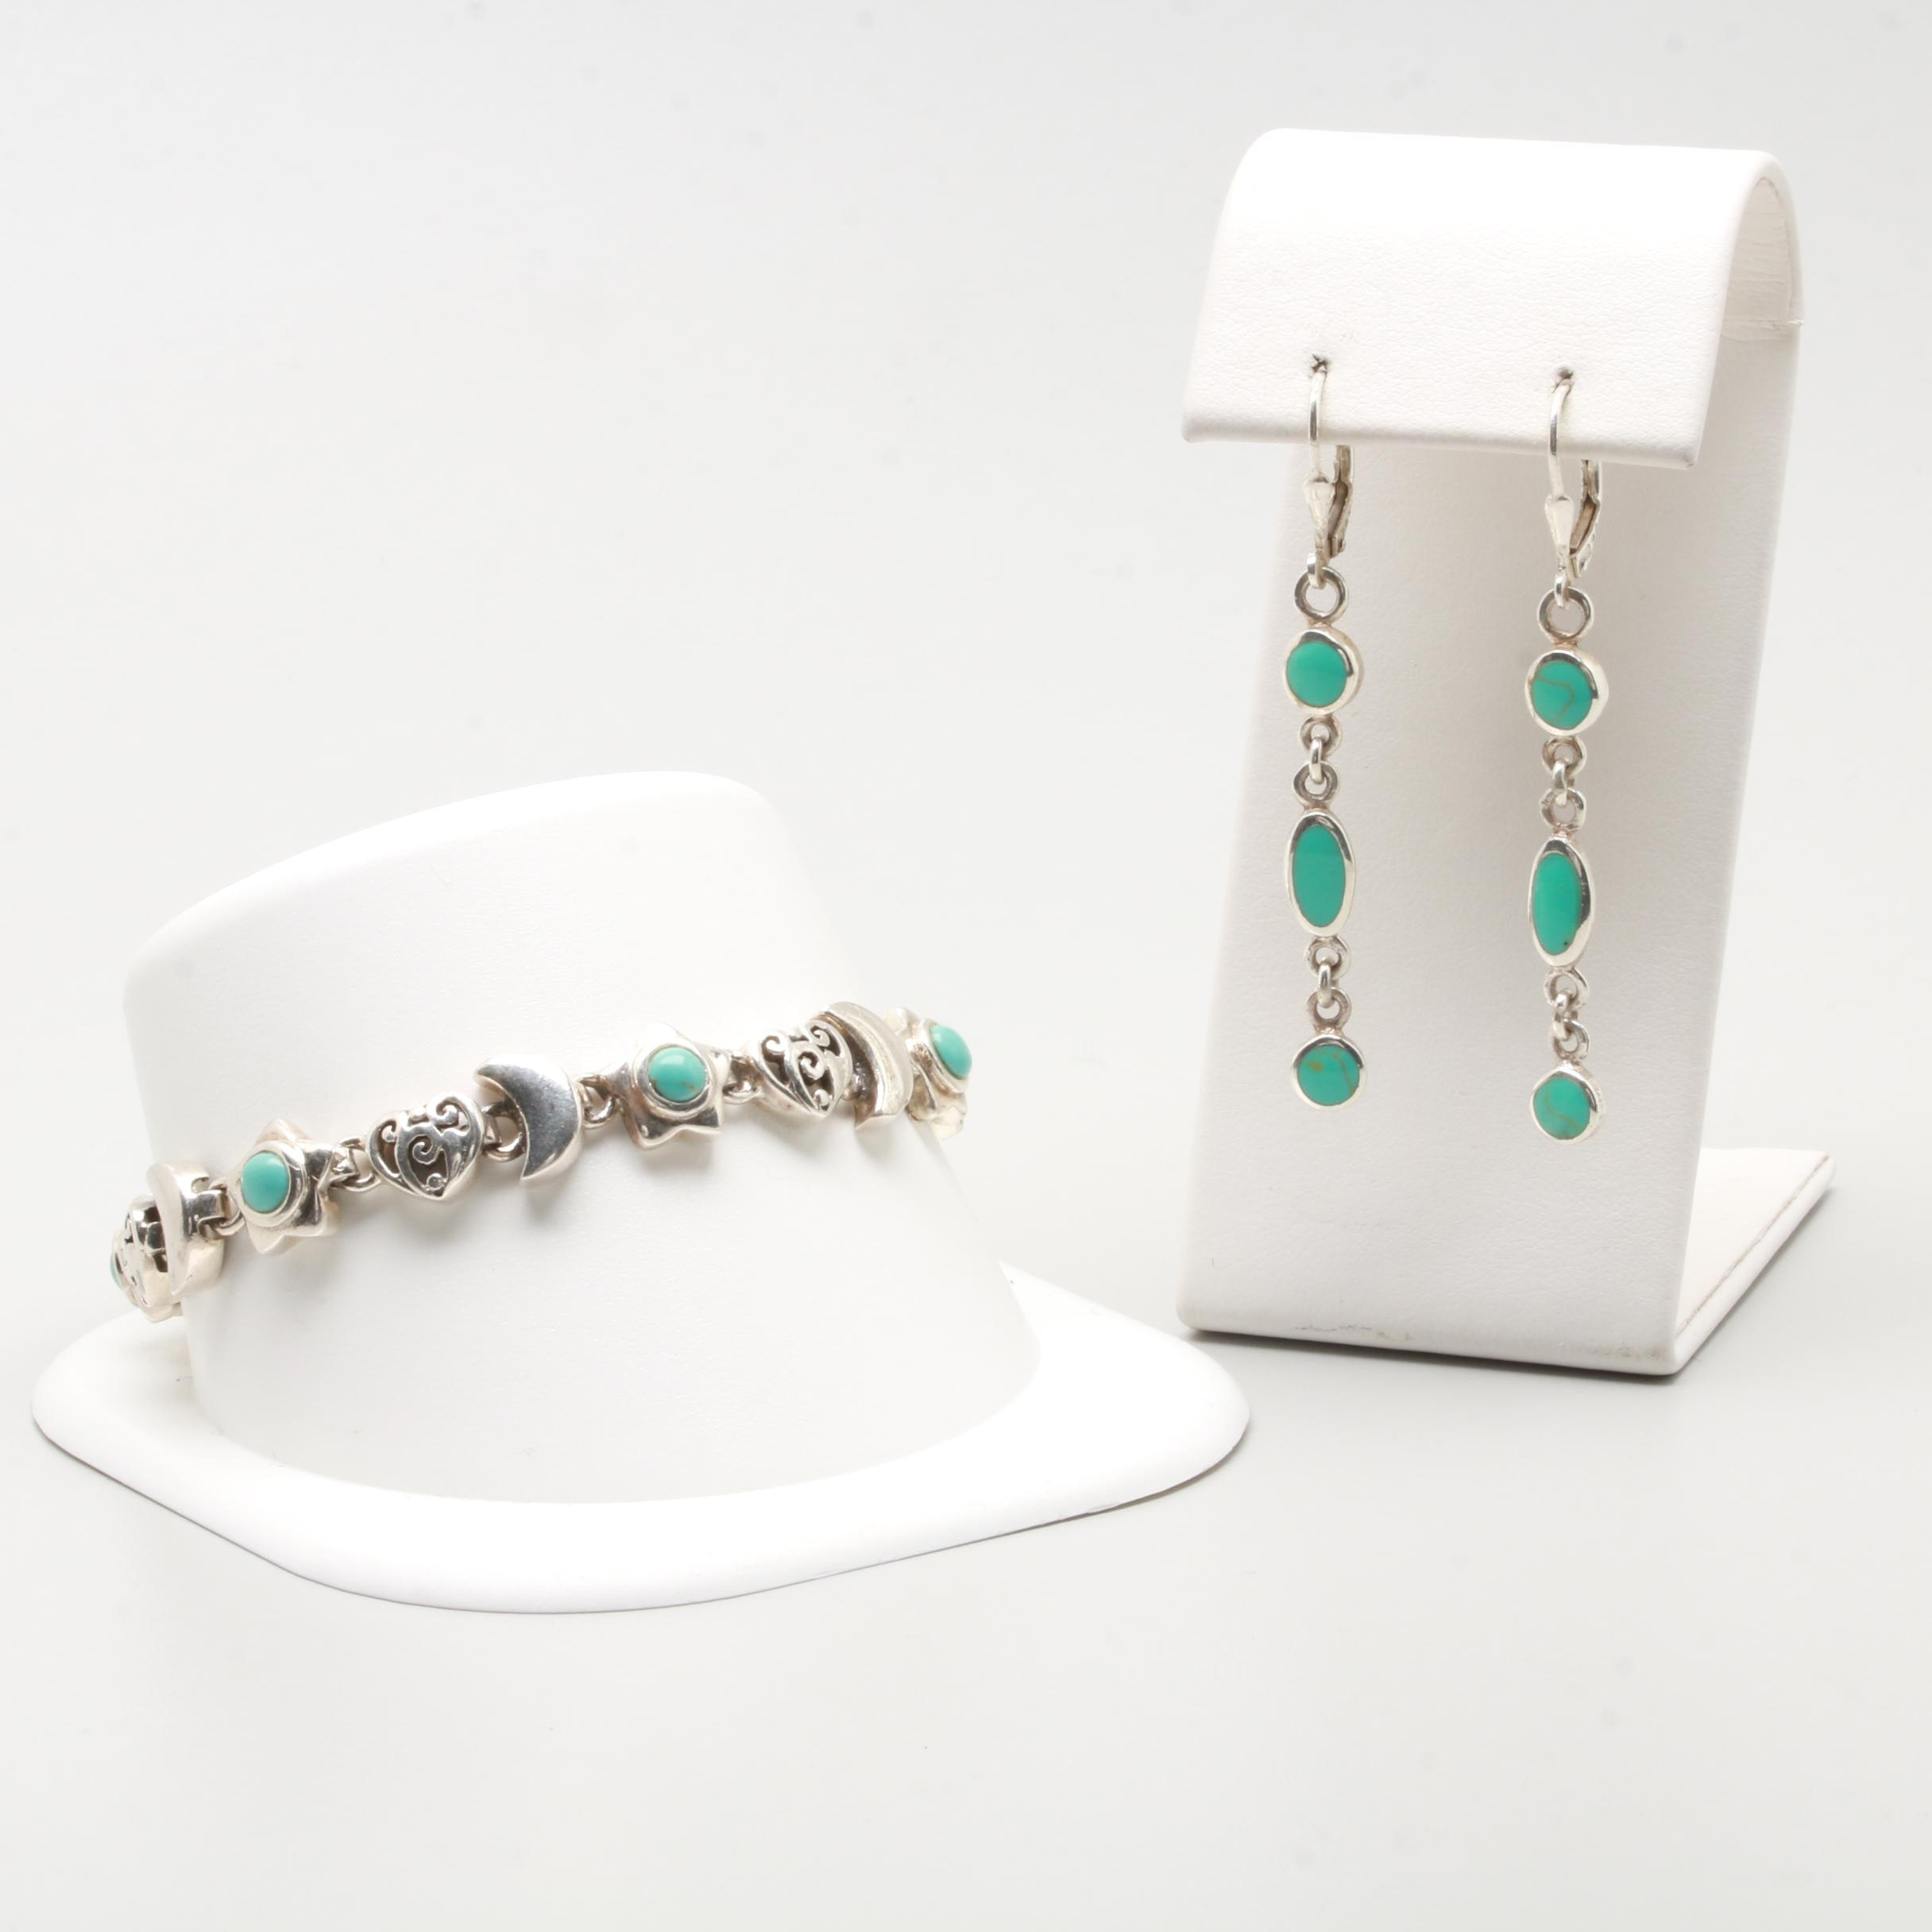 Sterling Silver Jewelry Selection Including Imitation Turquoise